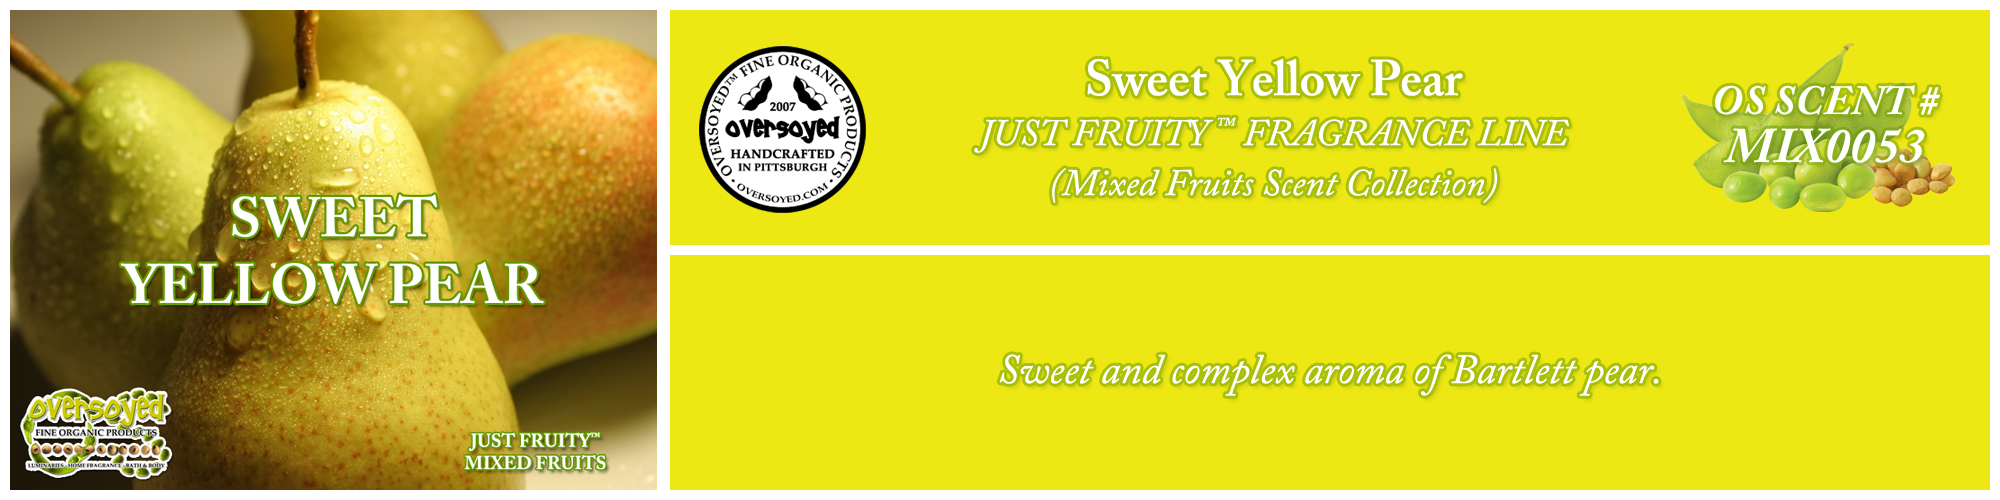 Sweet Yellow Pear Handcrafted Products Collection